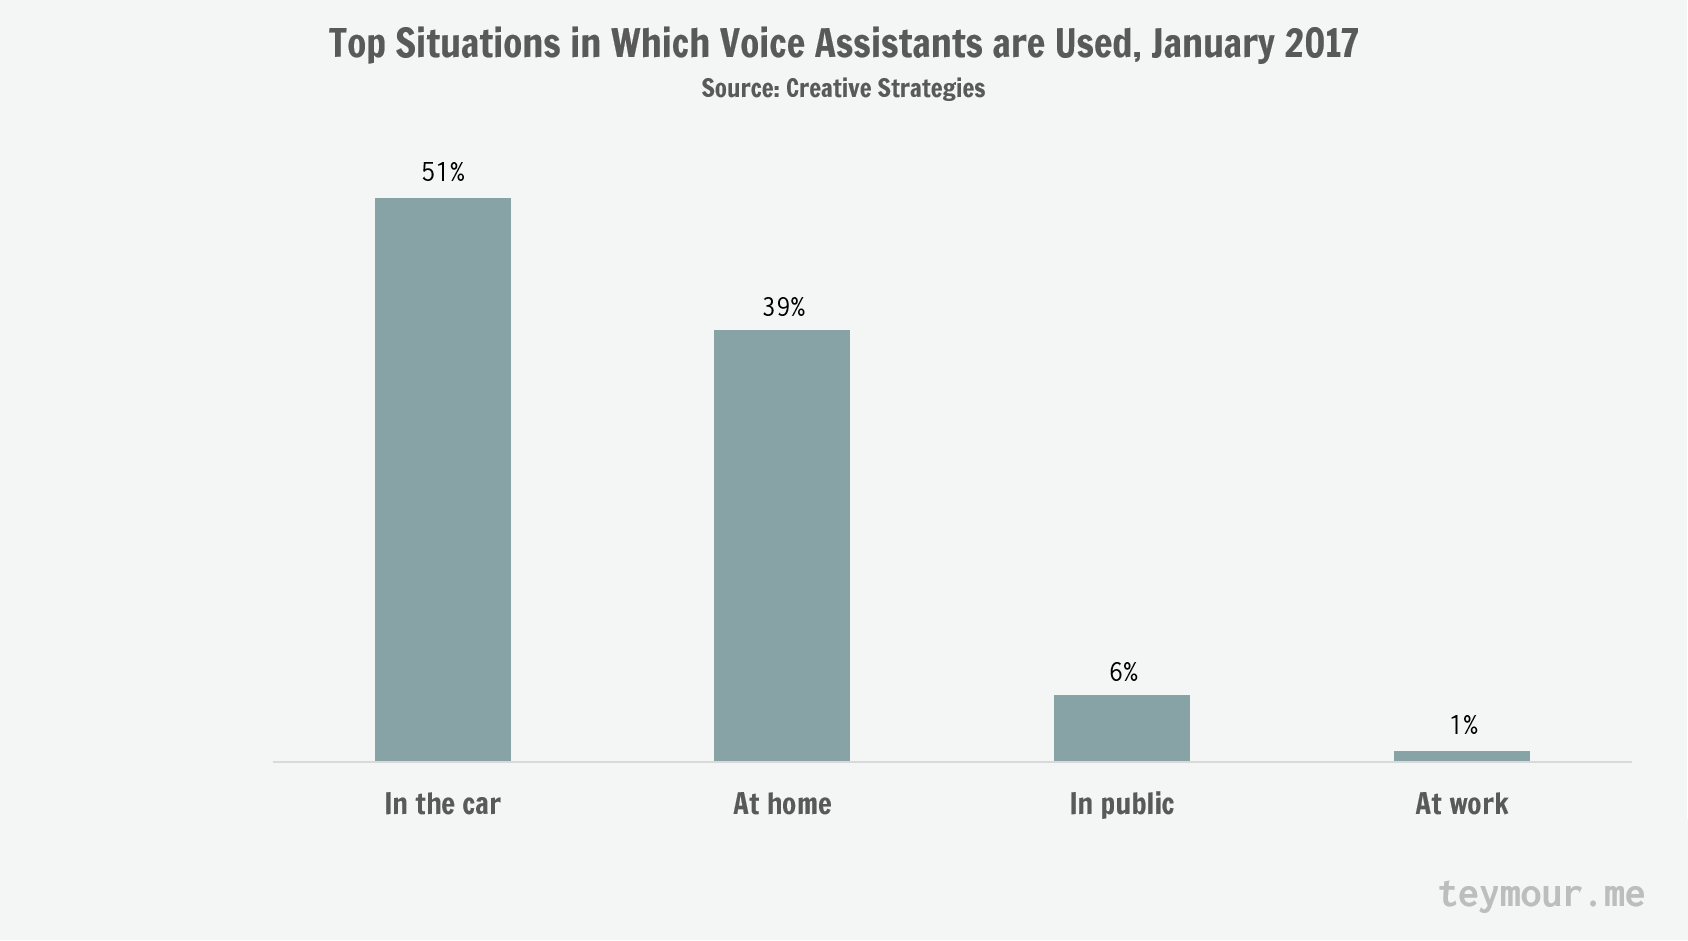 Top Situations In Which Voice Assistants Are Used - Jan 2017 - Amazon Alexa, Google Assistant, Microsoft Cortana